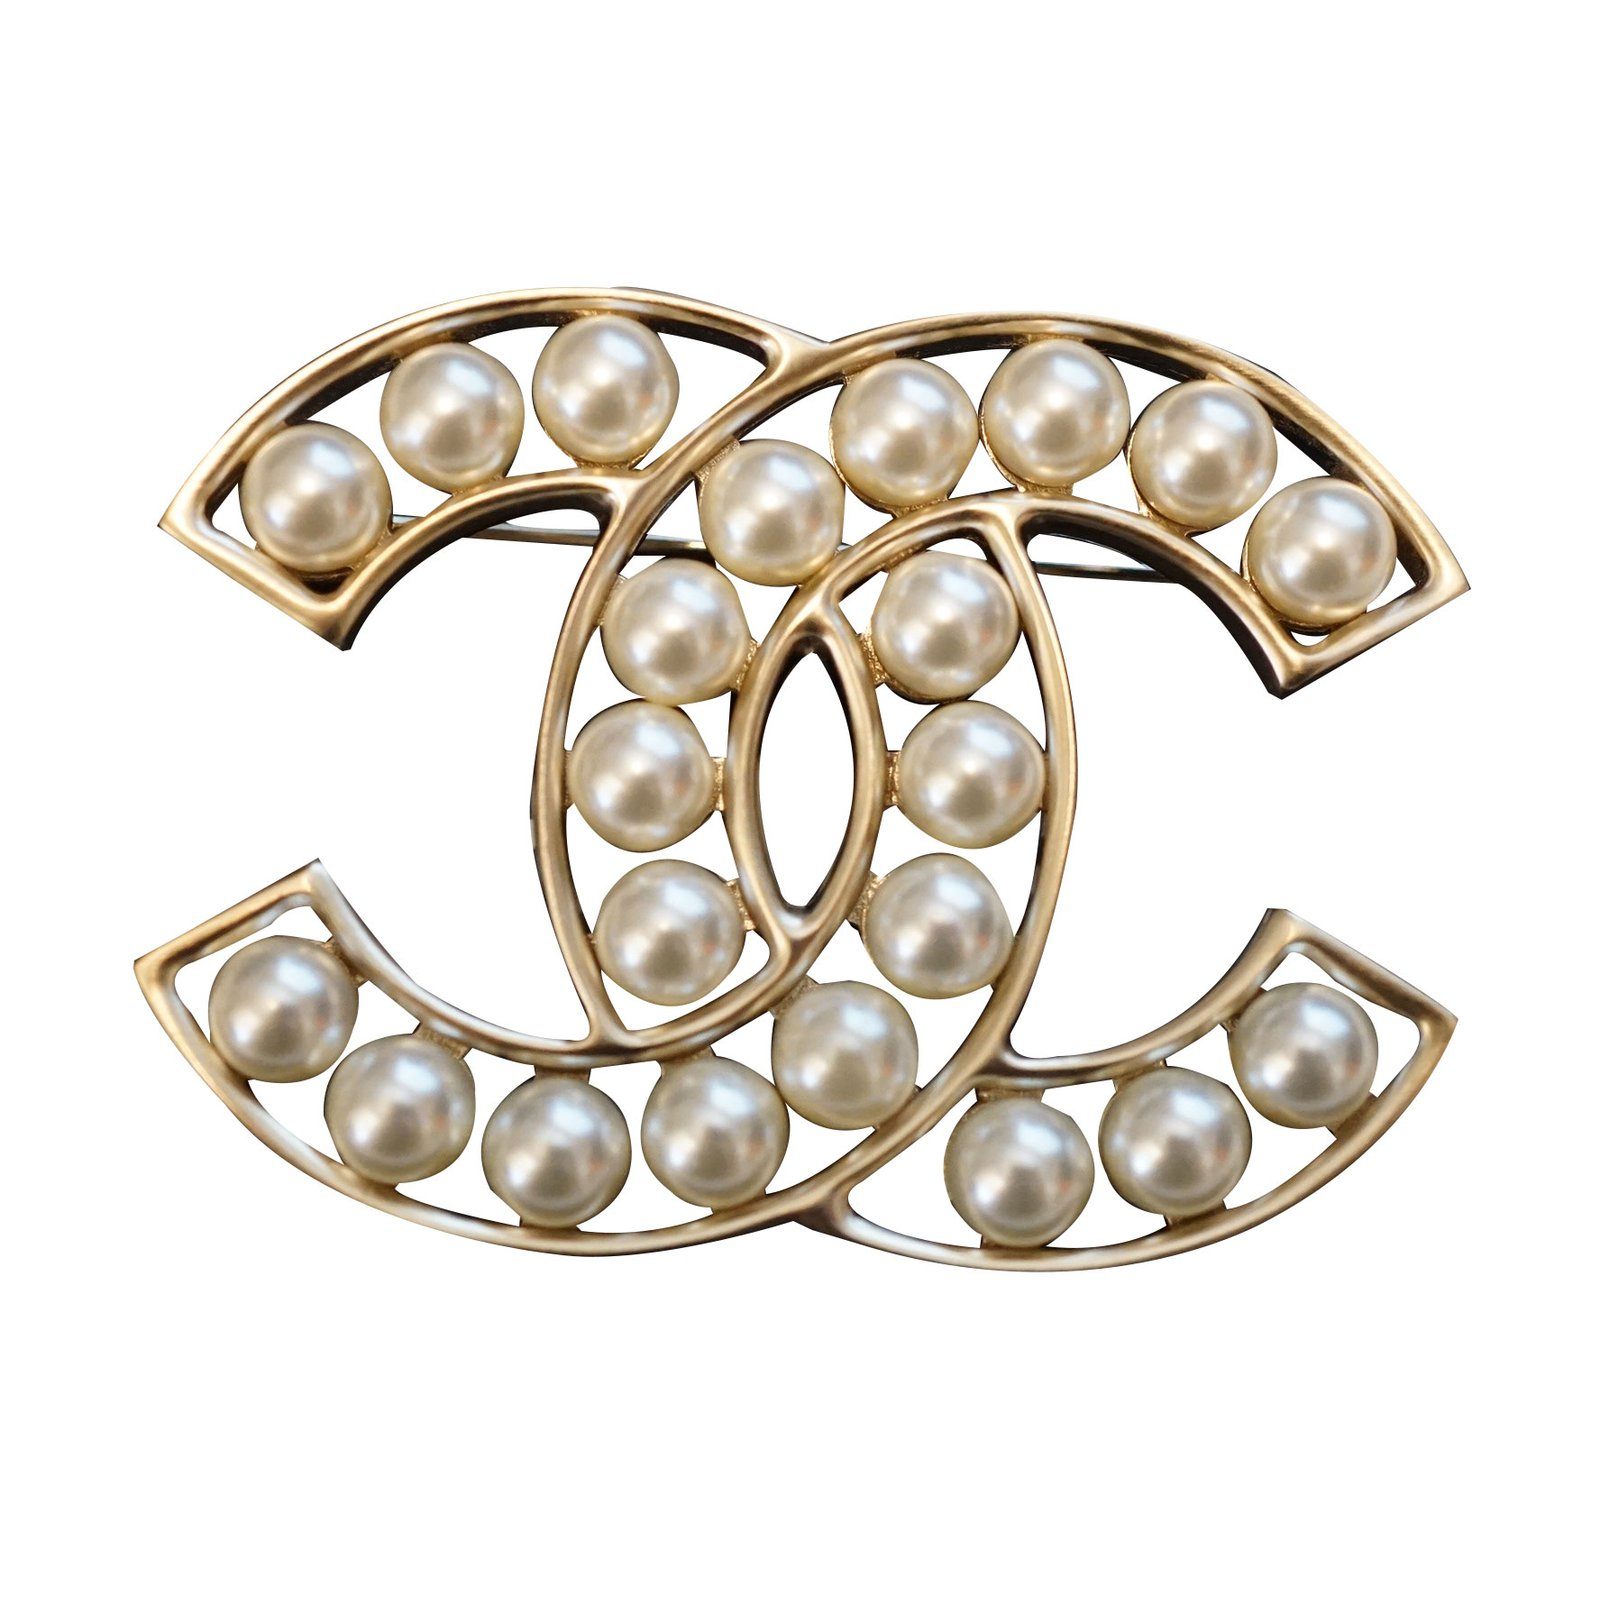 crystal pearly costume white chanel pearls brooches brooch c ref default us jewelry silver fashion packshot strass metal glass